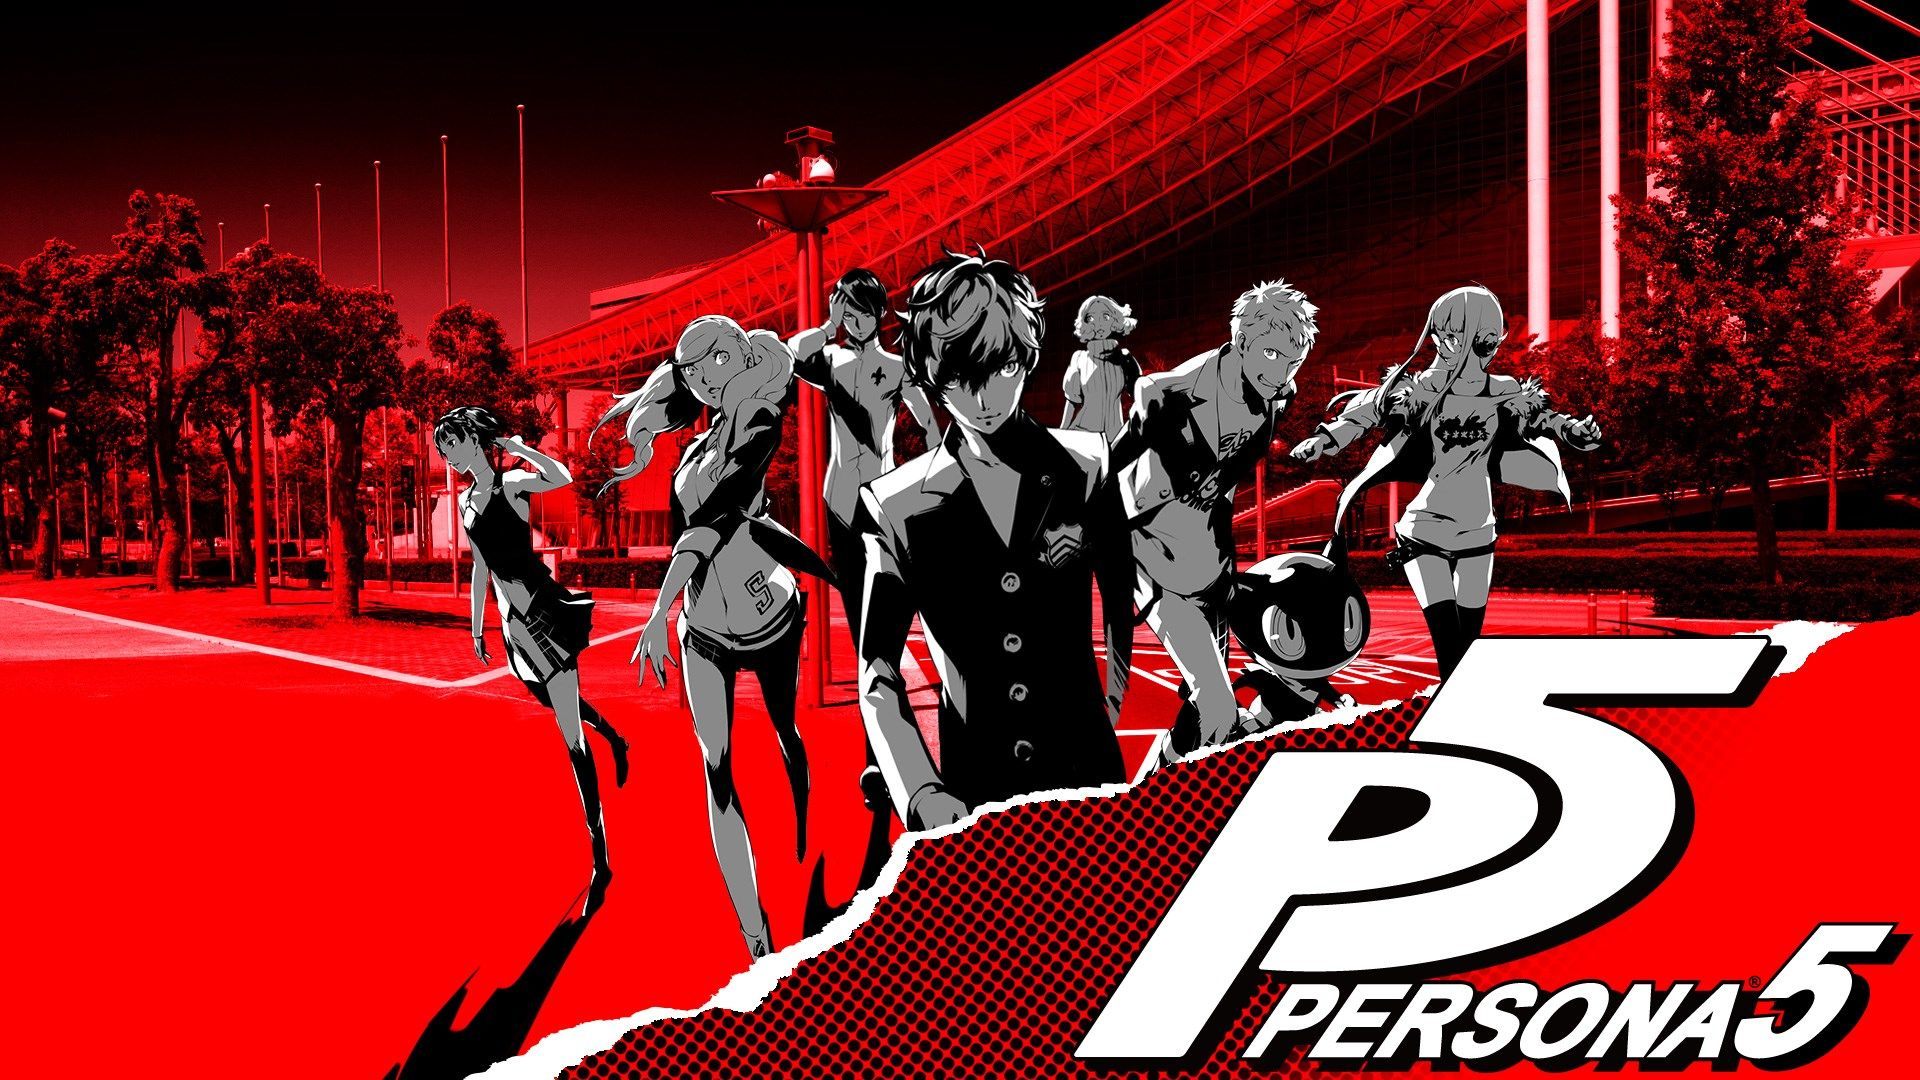 persona 5 haru wallpaper